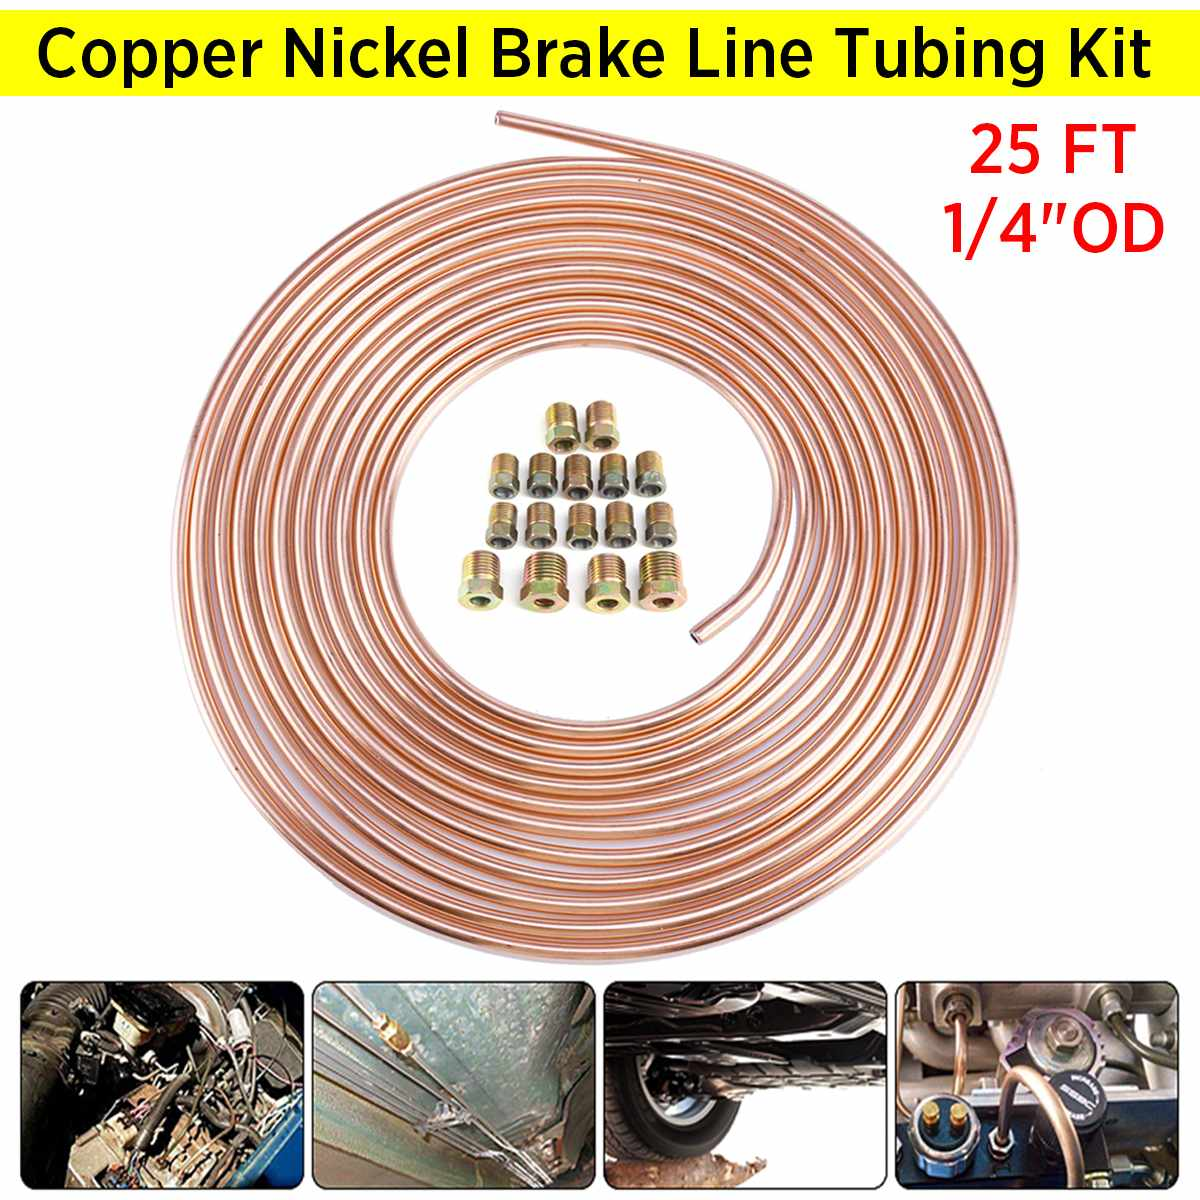 1//4 Copper Nickel Brake Line kit 5 different lengths Double Flared w//Standard 1//4 tube nuts